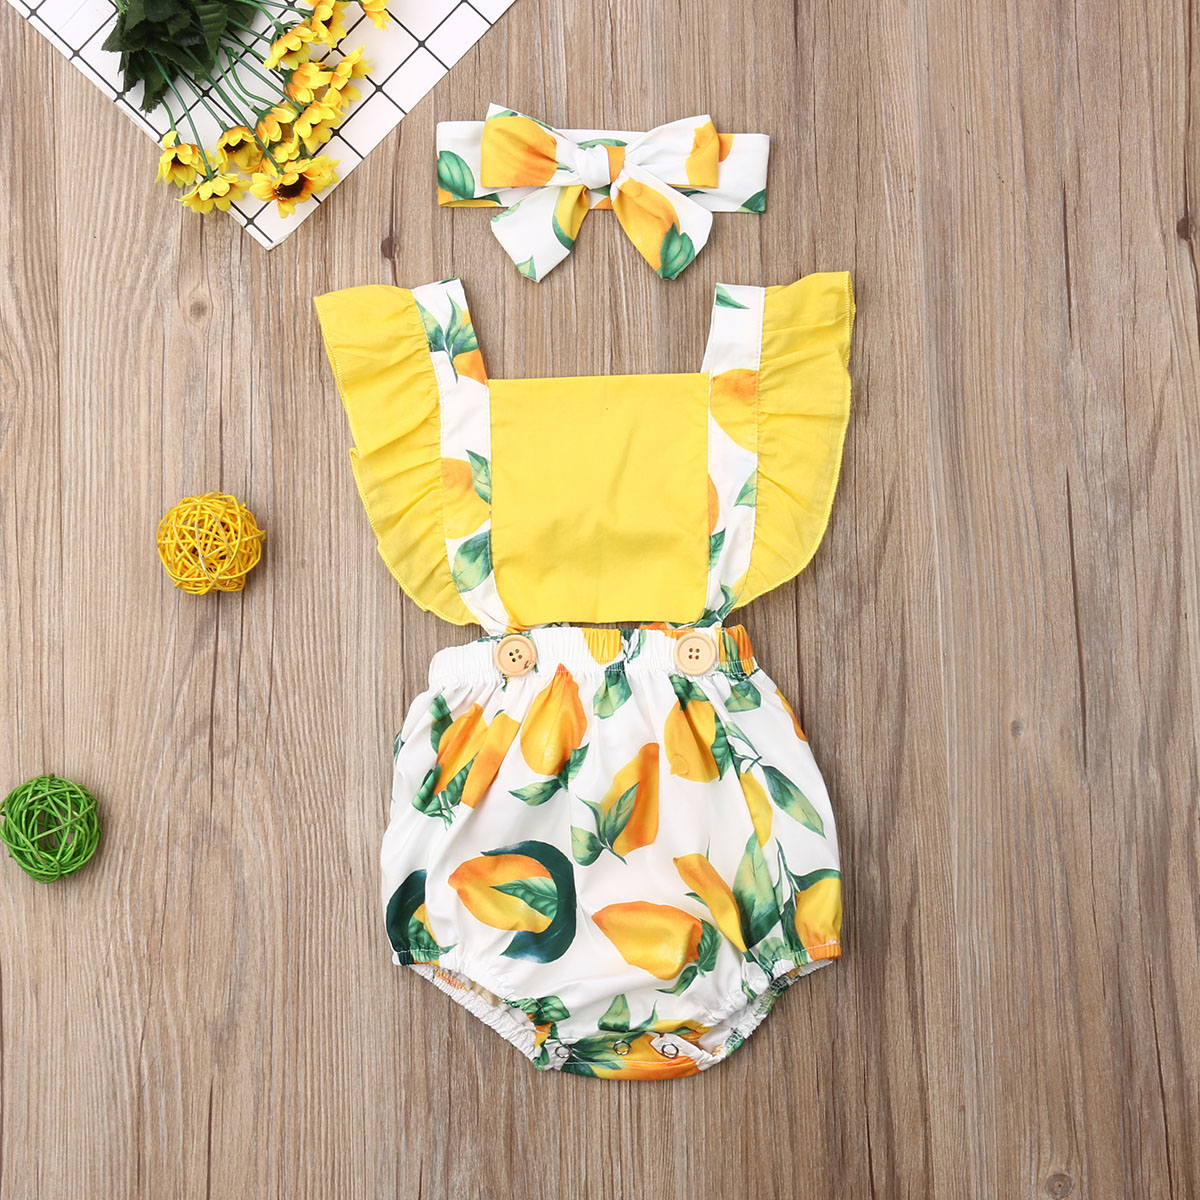 Baby Girl Romper Newborn Baby Girl Lemon Fruit Romper Sleeveless Jumpsuit Clothes  Summer Infant Baby Outfit Set 0-24M